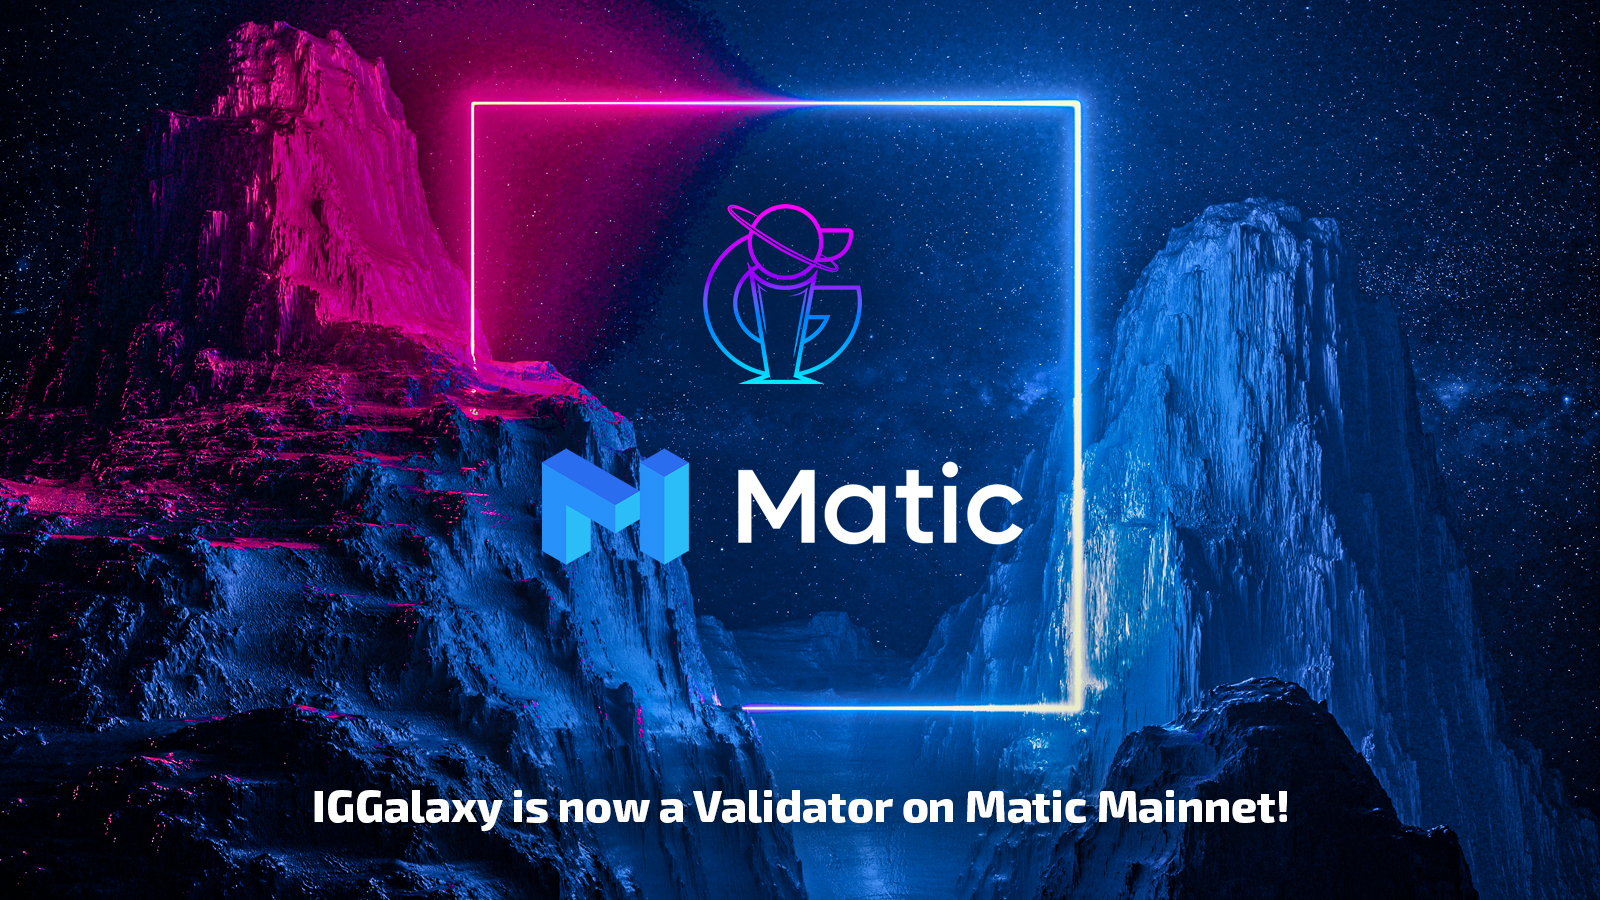 IGGalaxy now operating a Validator node on the Matic network mainnet